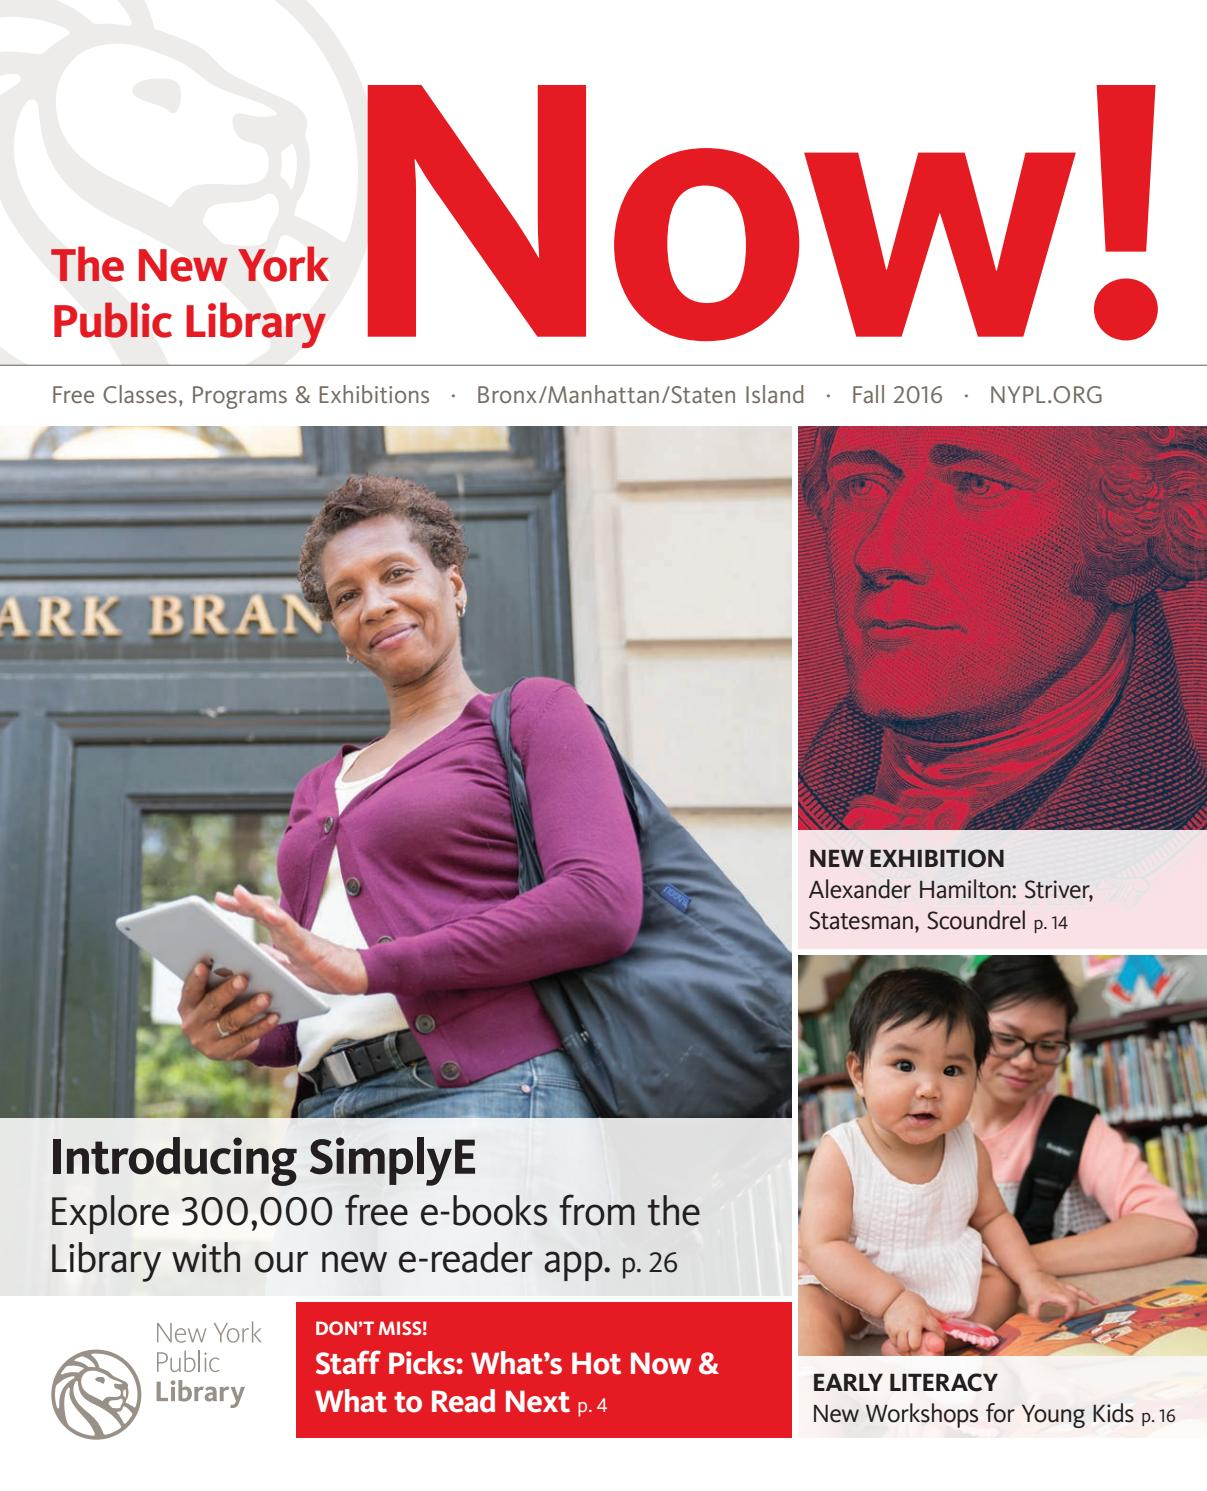 The New York Public Library Now! Fall 2016 by The New York